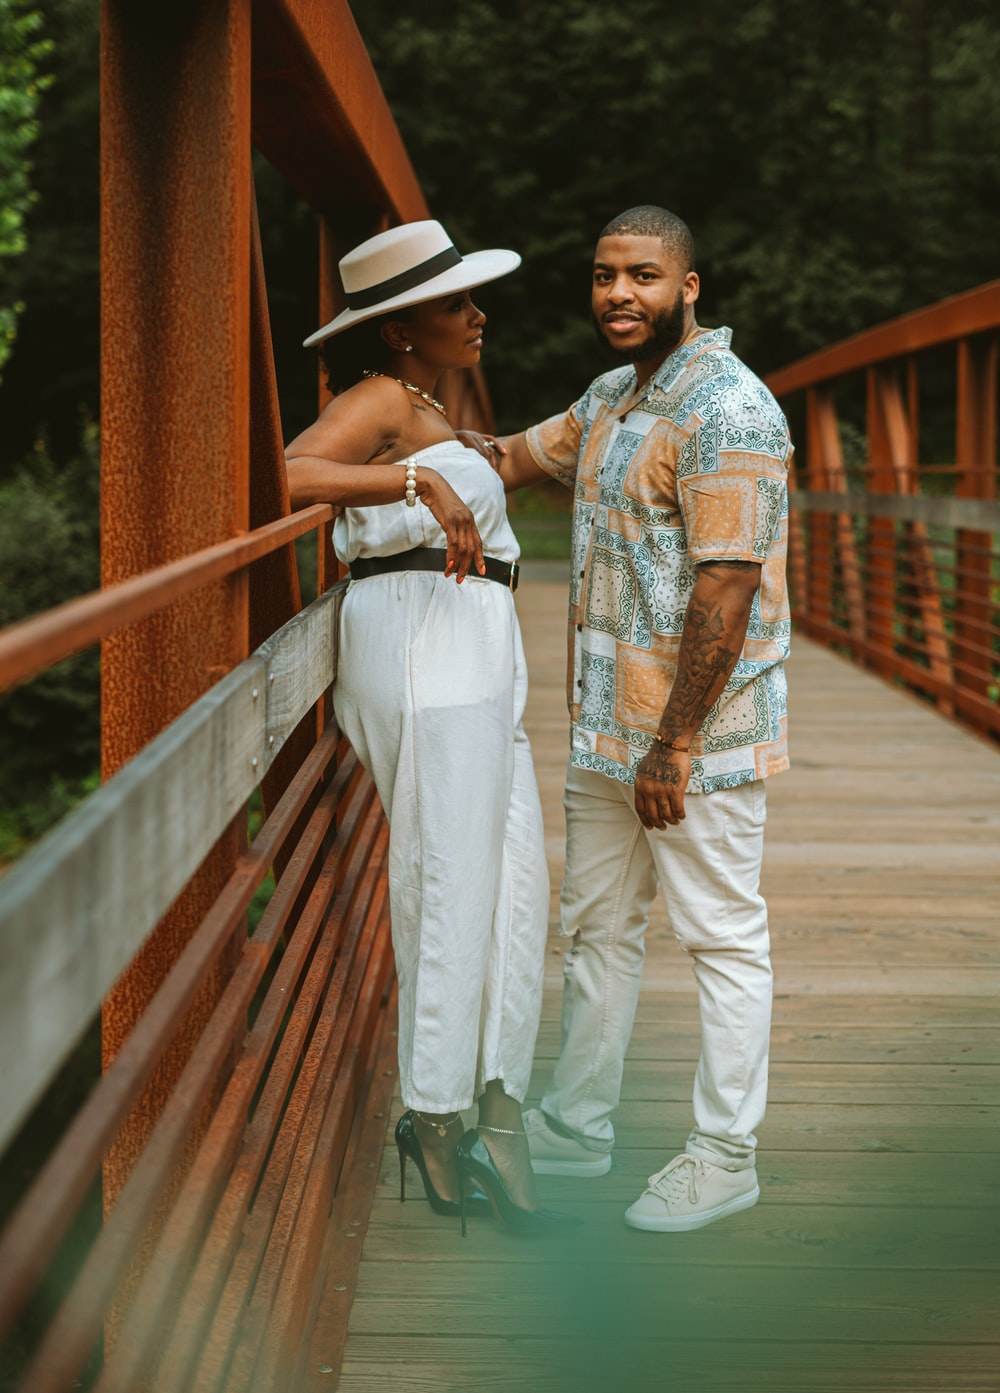 man in white pants and woman in white dress walking on wooden bridge during daytime